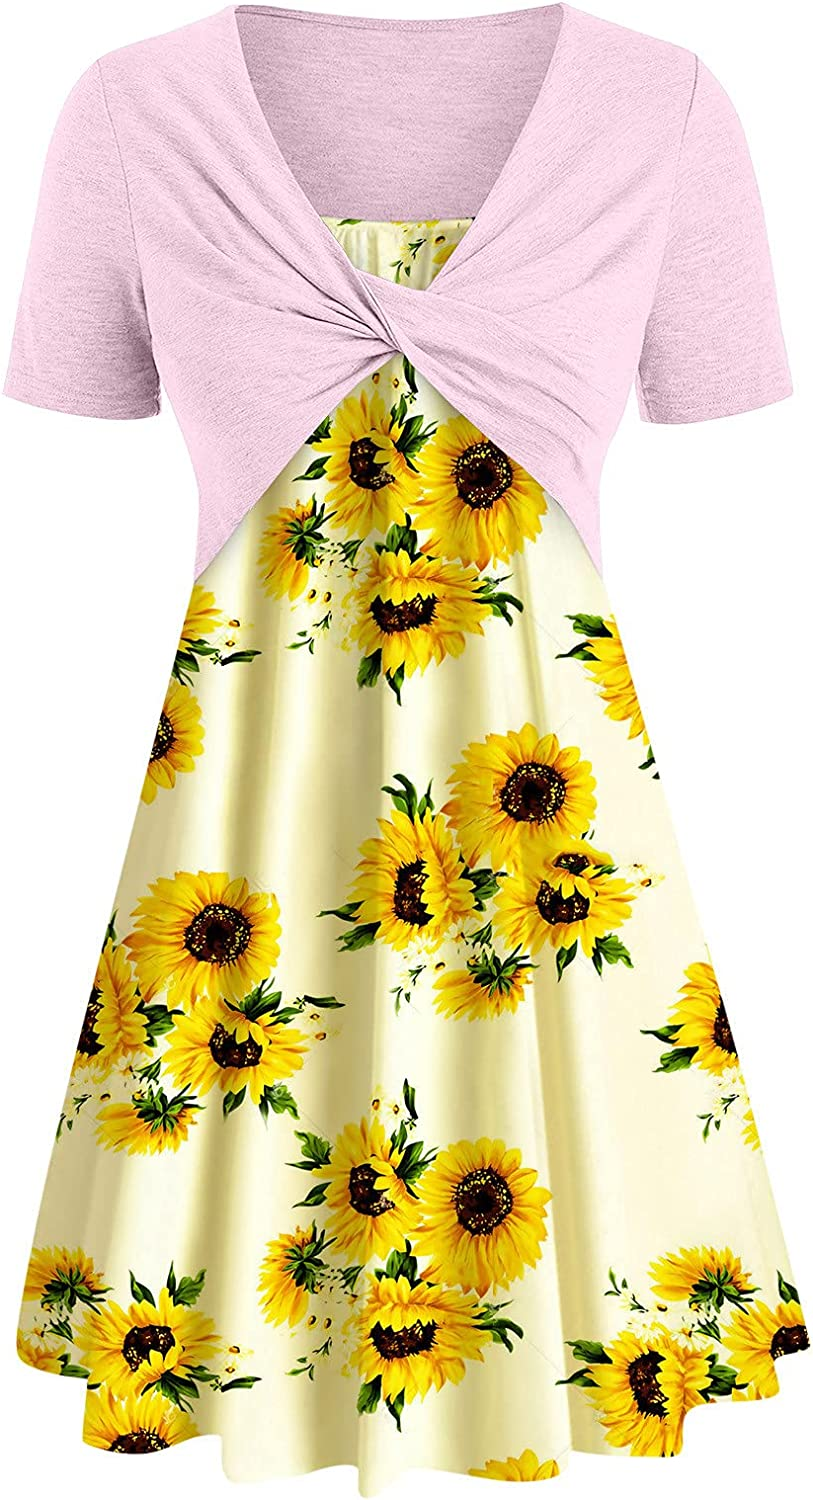 Summer Dresses for Women Outfits Two Piece Sunflower Butterfly Floral Dinosaur Print Suit Dress Cross Knot Bandage Dress